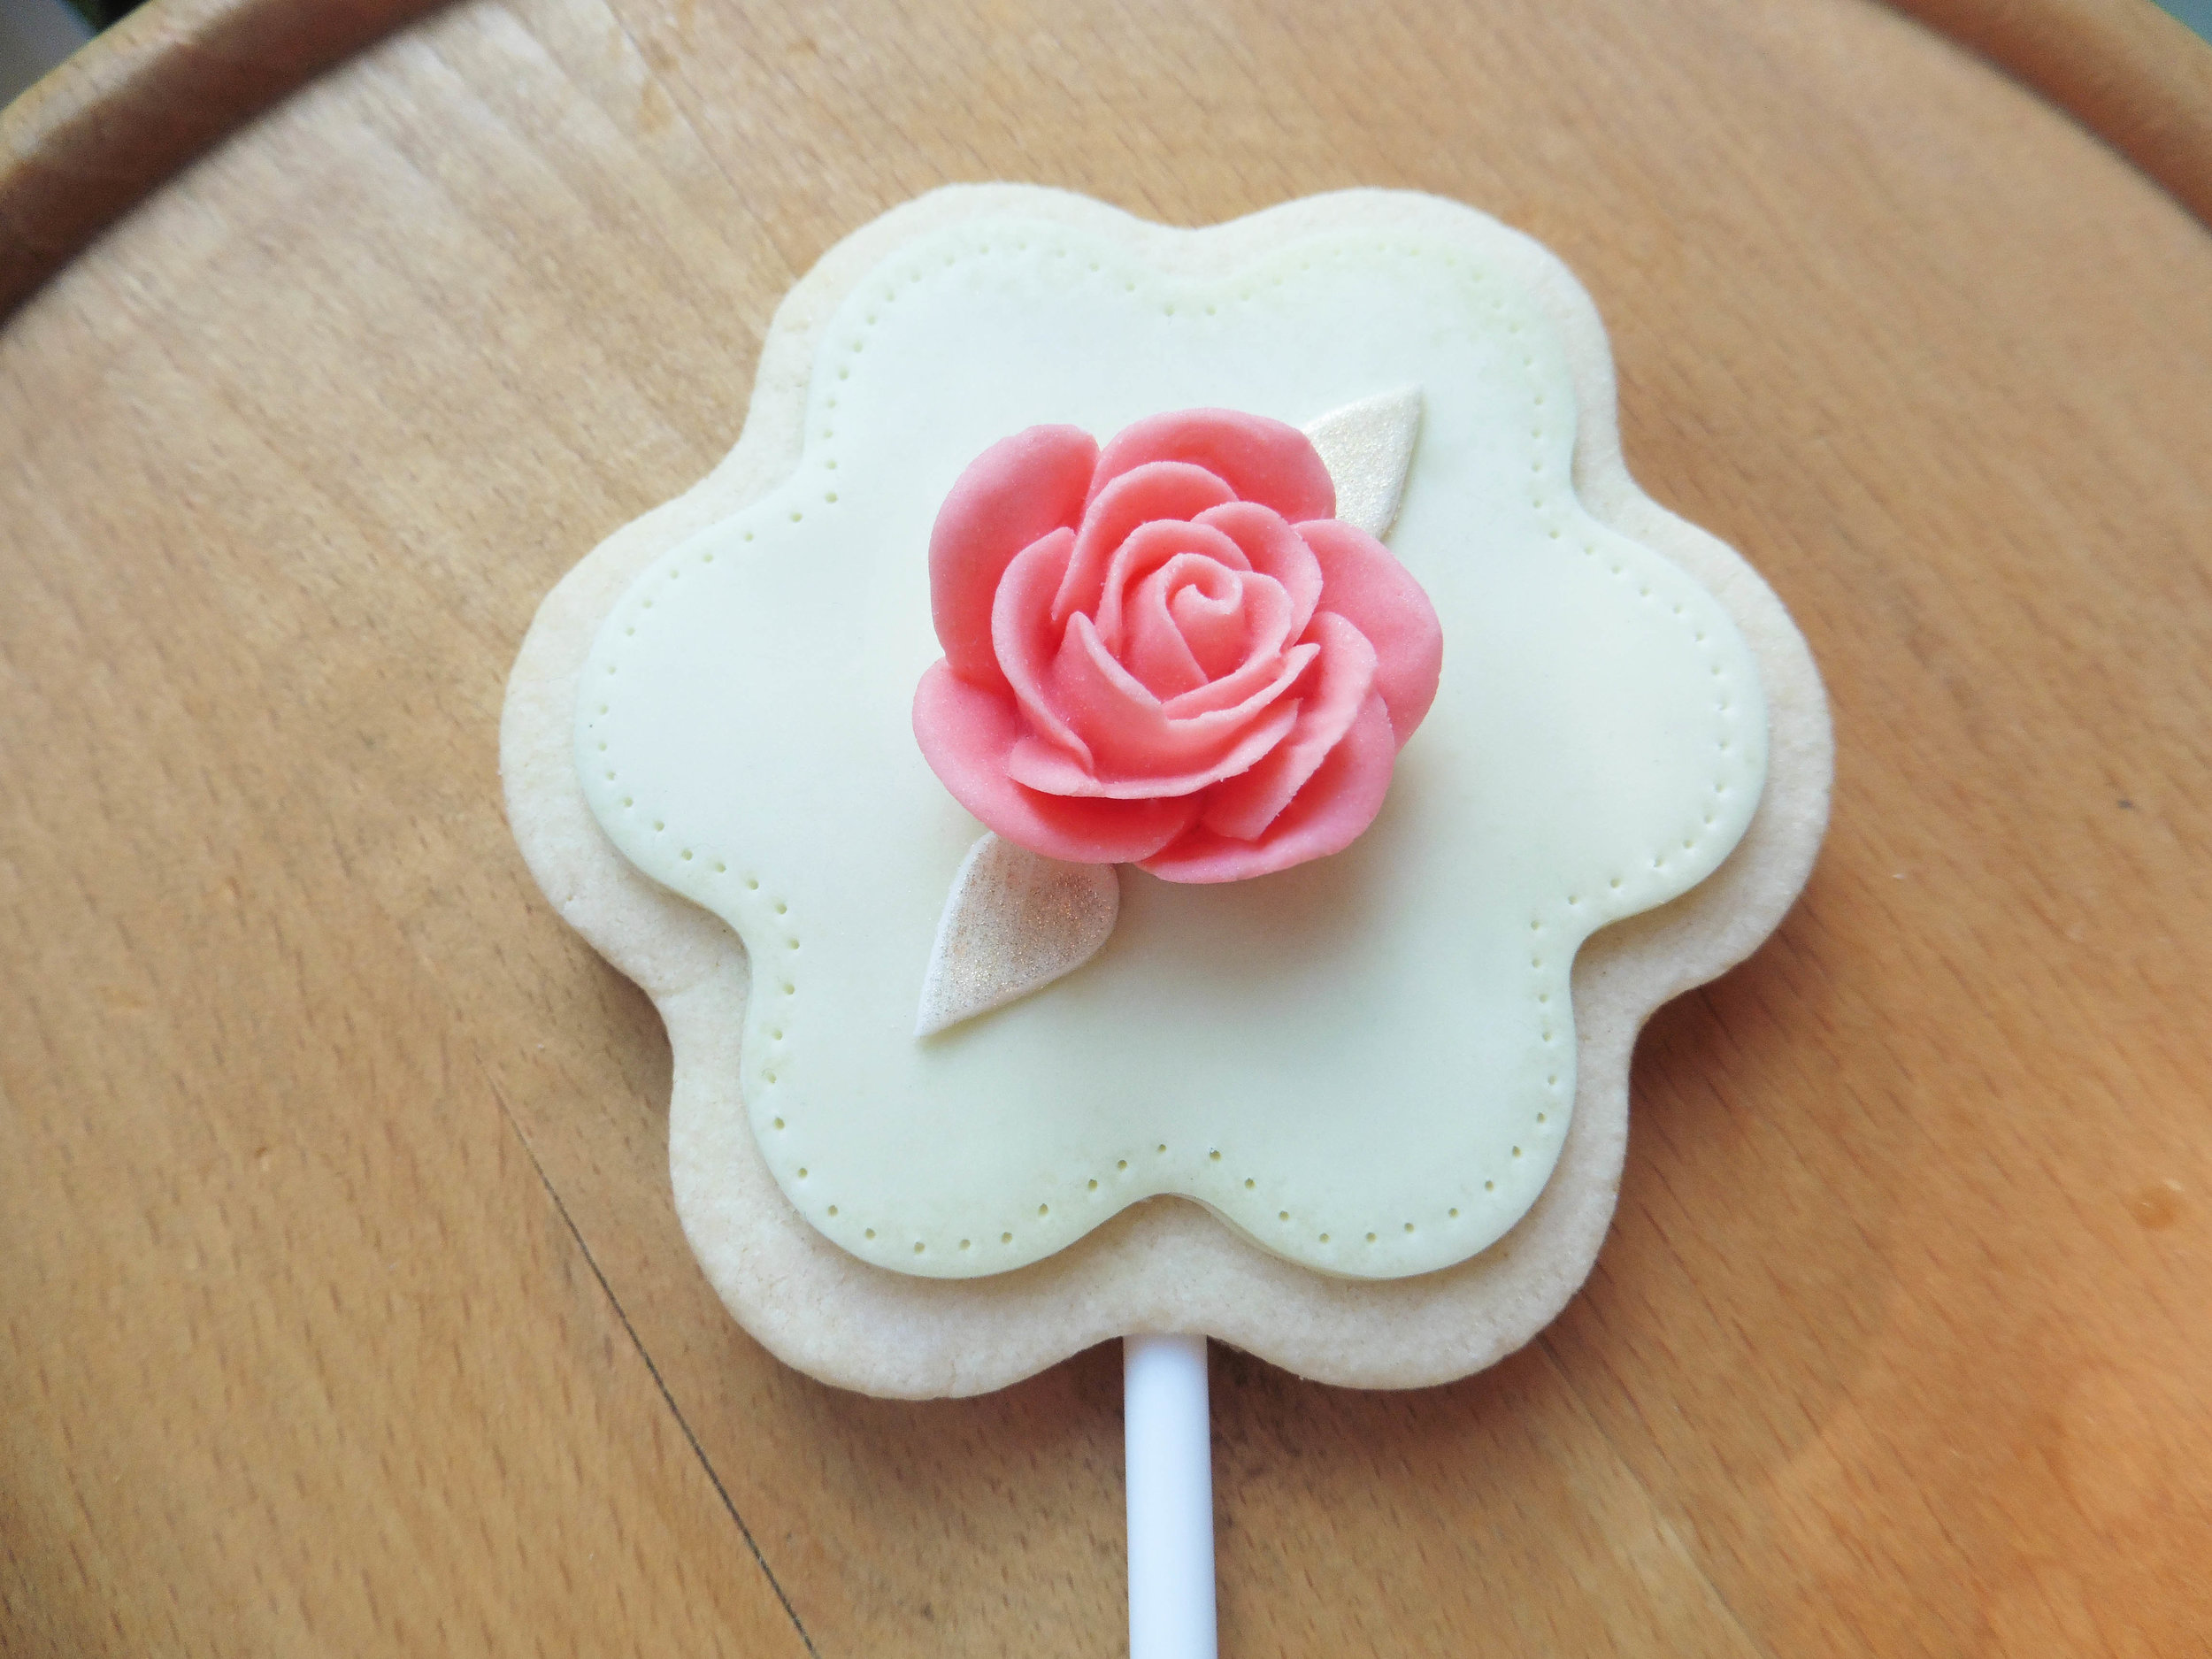 Icing Rose Biscuit